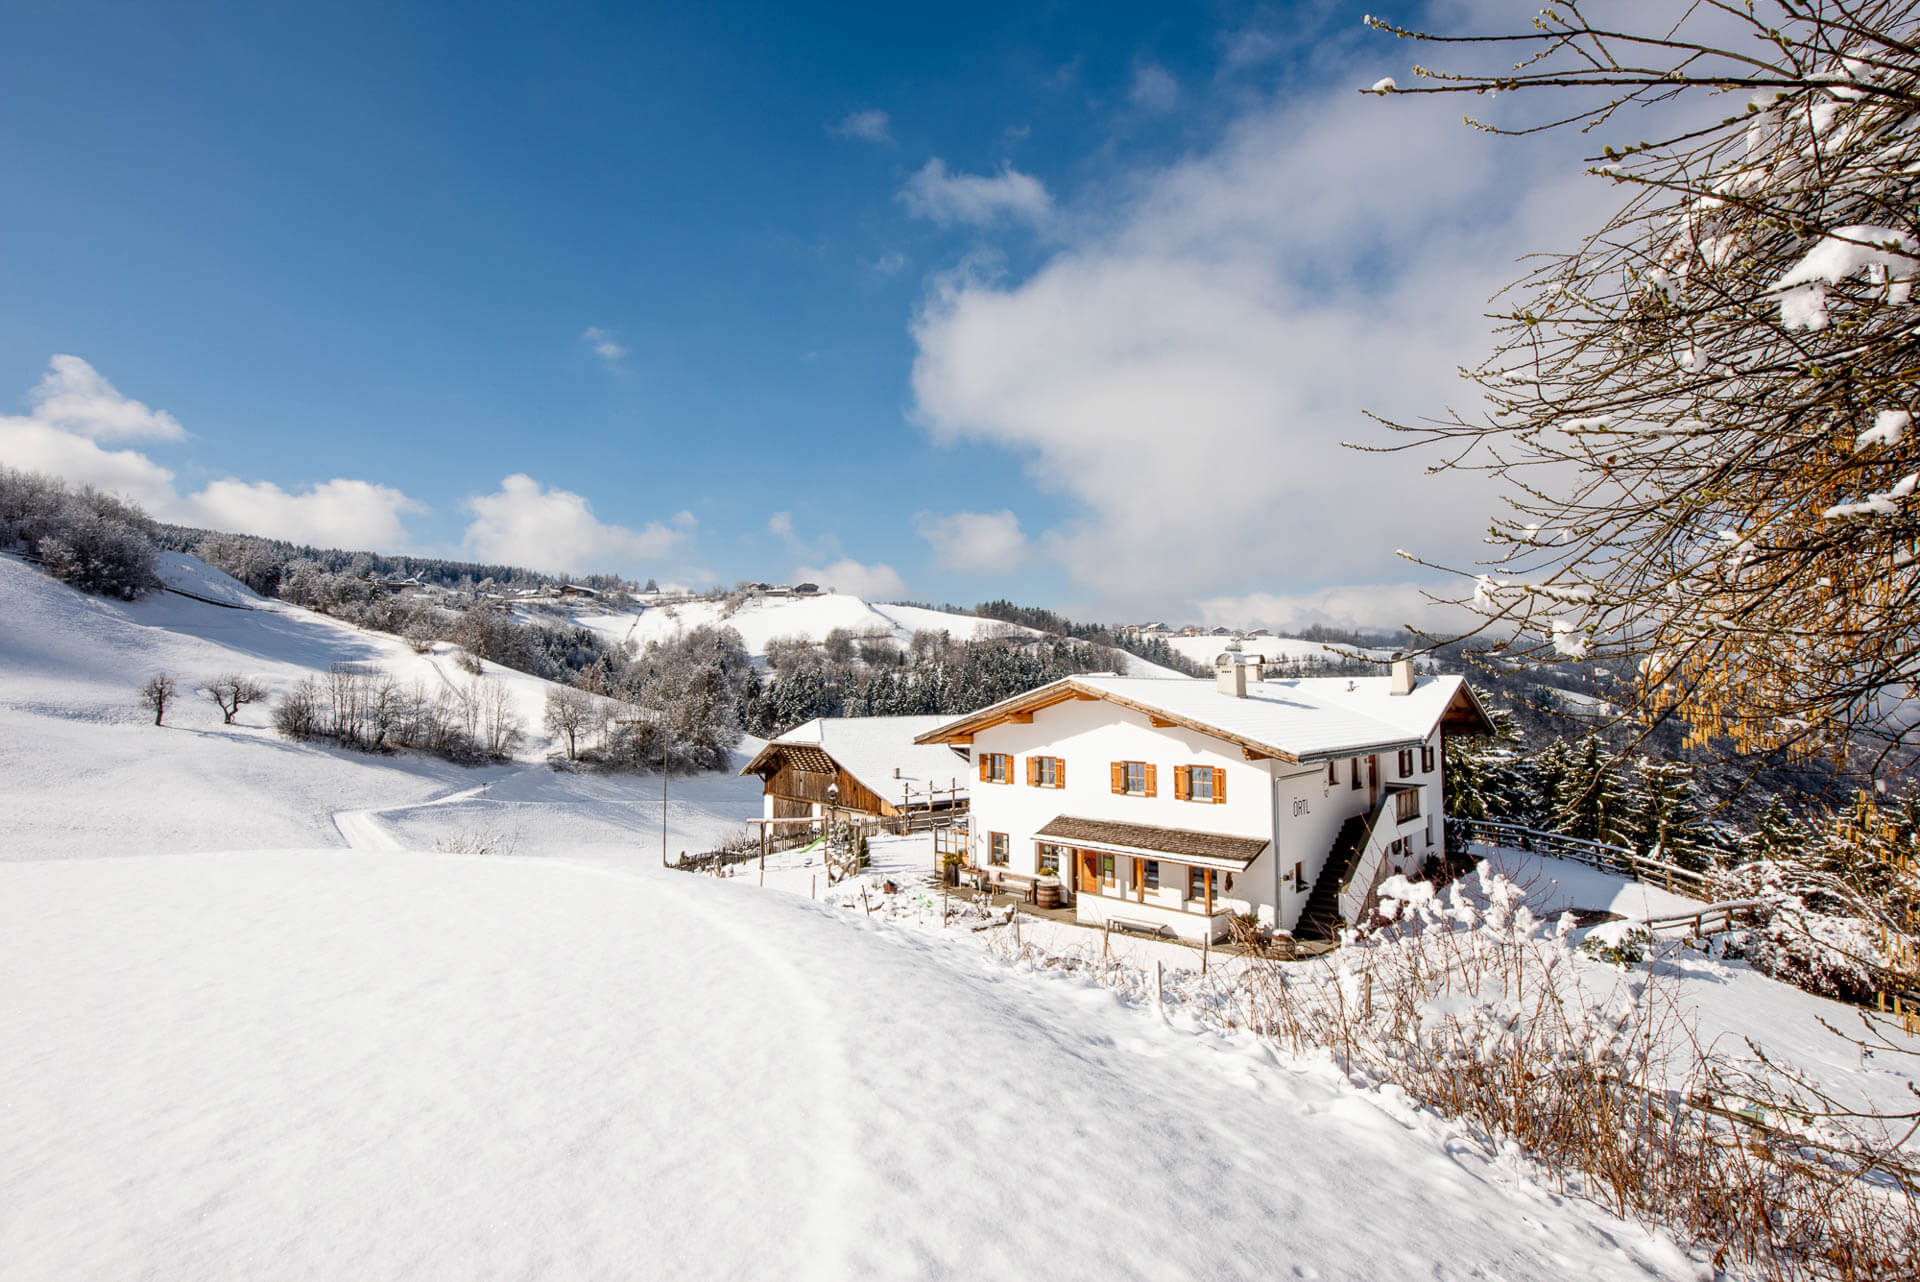 Paradiso invernale all'Örtlhof di Seis am Schlern